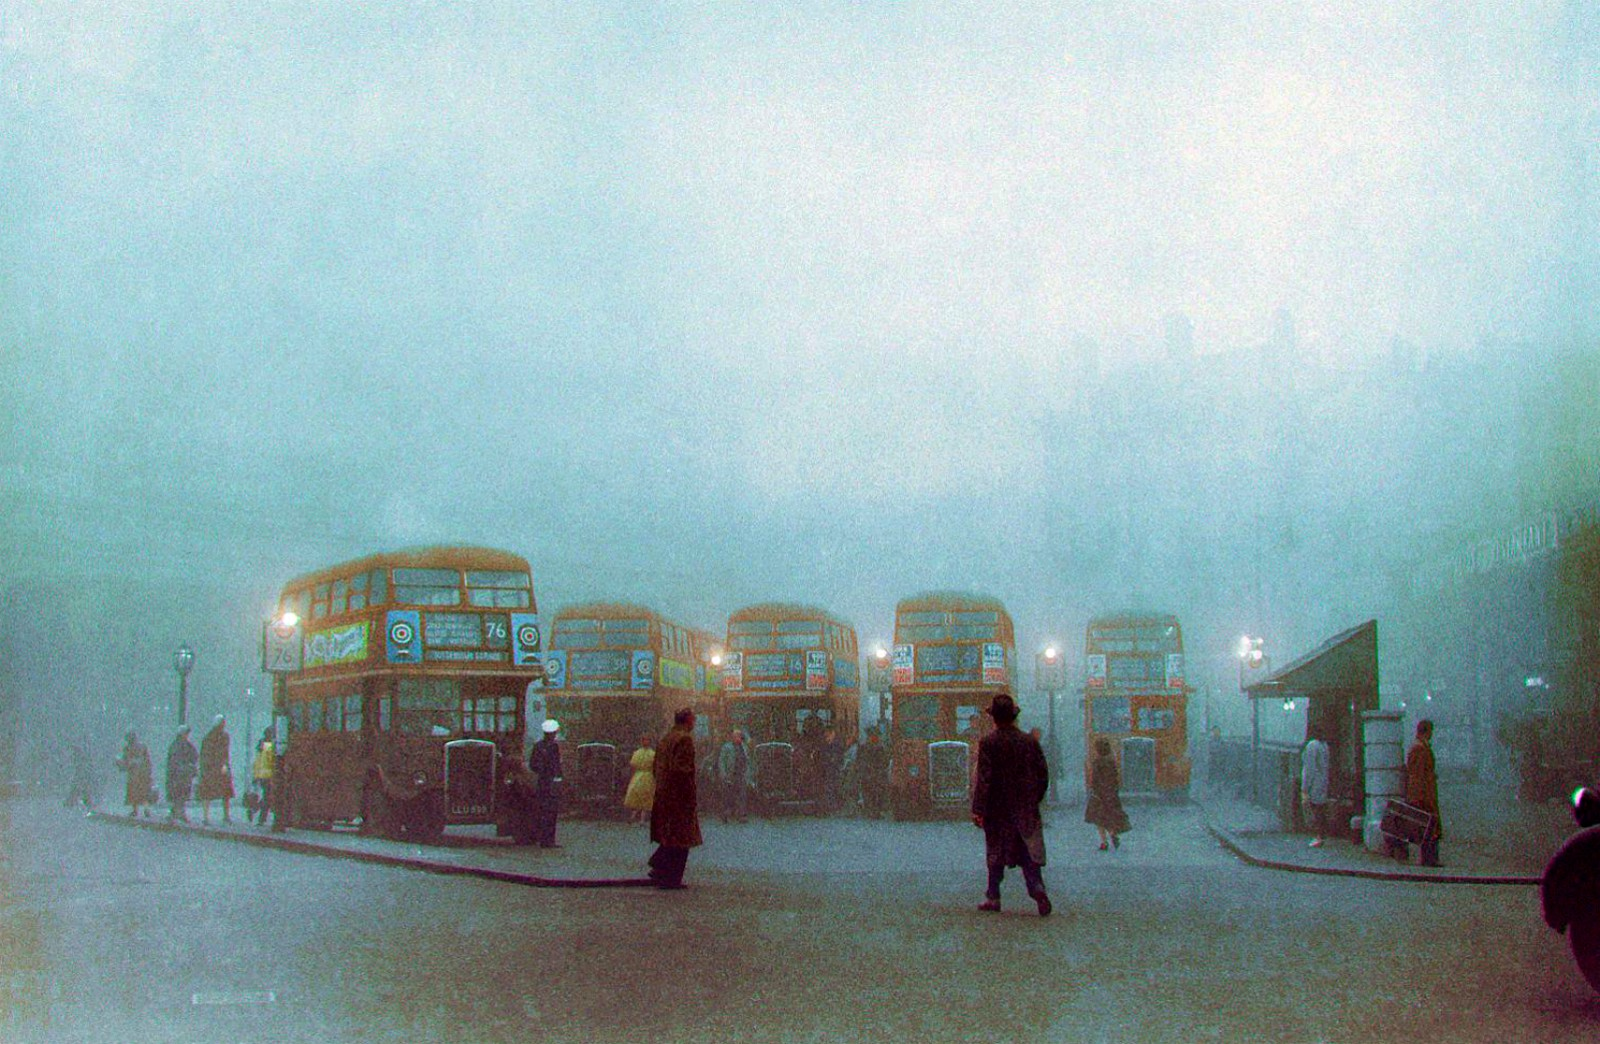 Transportes de Londres: carreiras 76, 38A, 16, 52, Londres (C. Stanley, 1959)Fog and smog at Victoria Station in 1959. (CollectionFB)